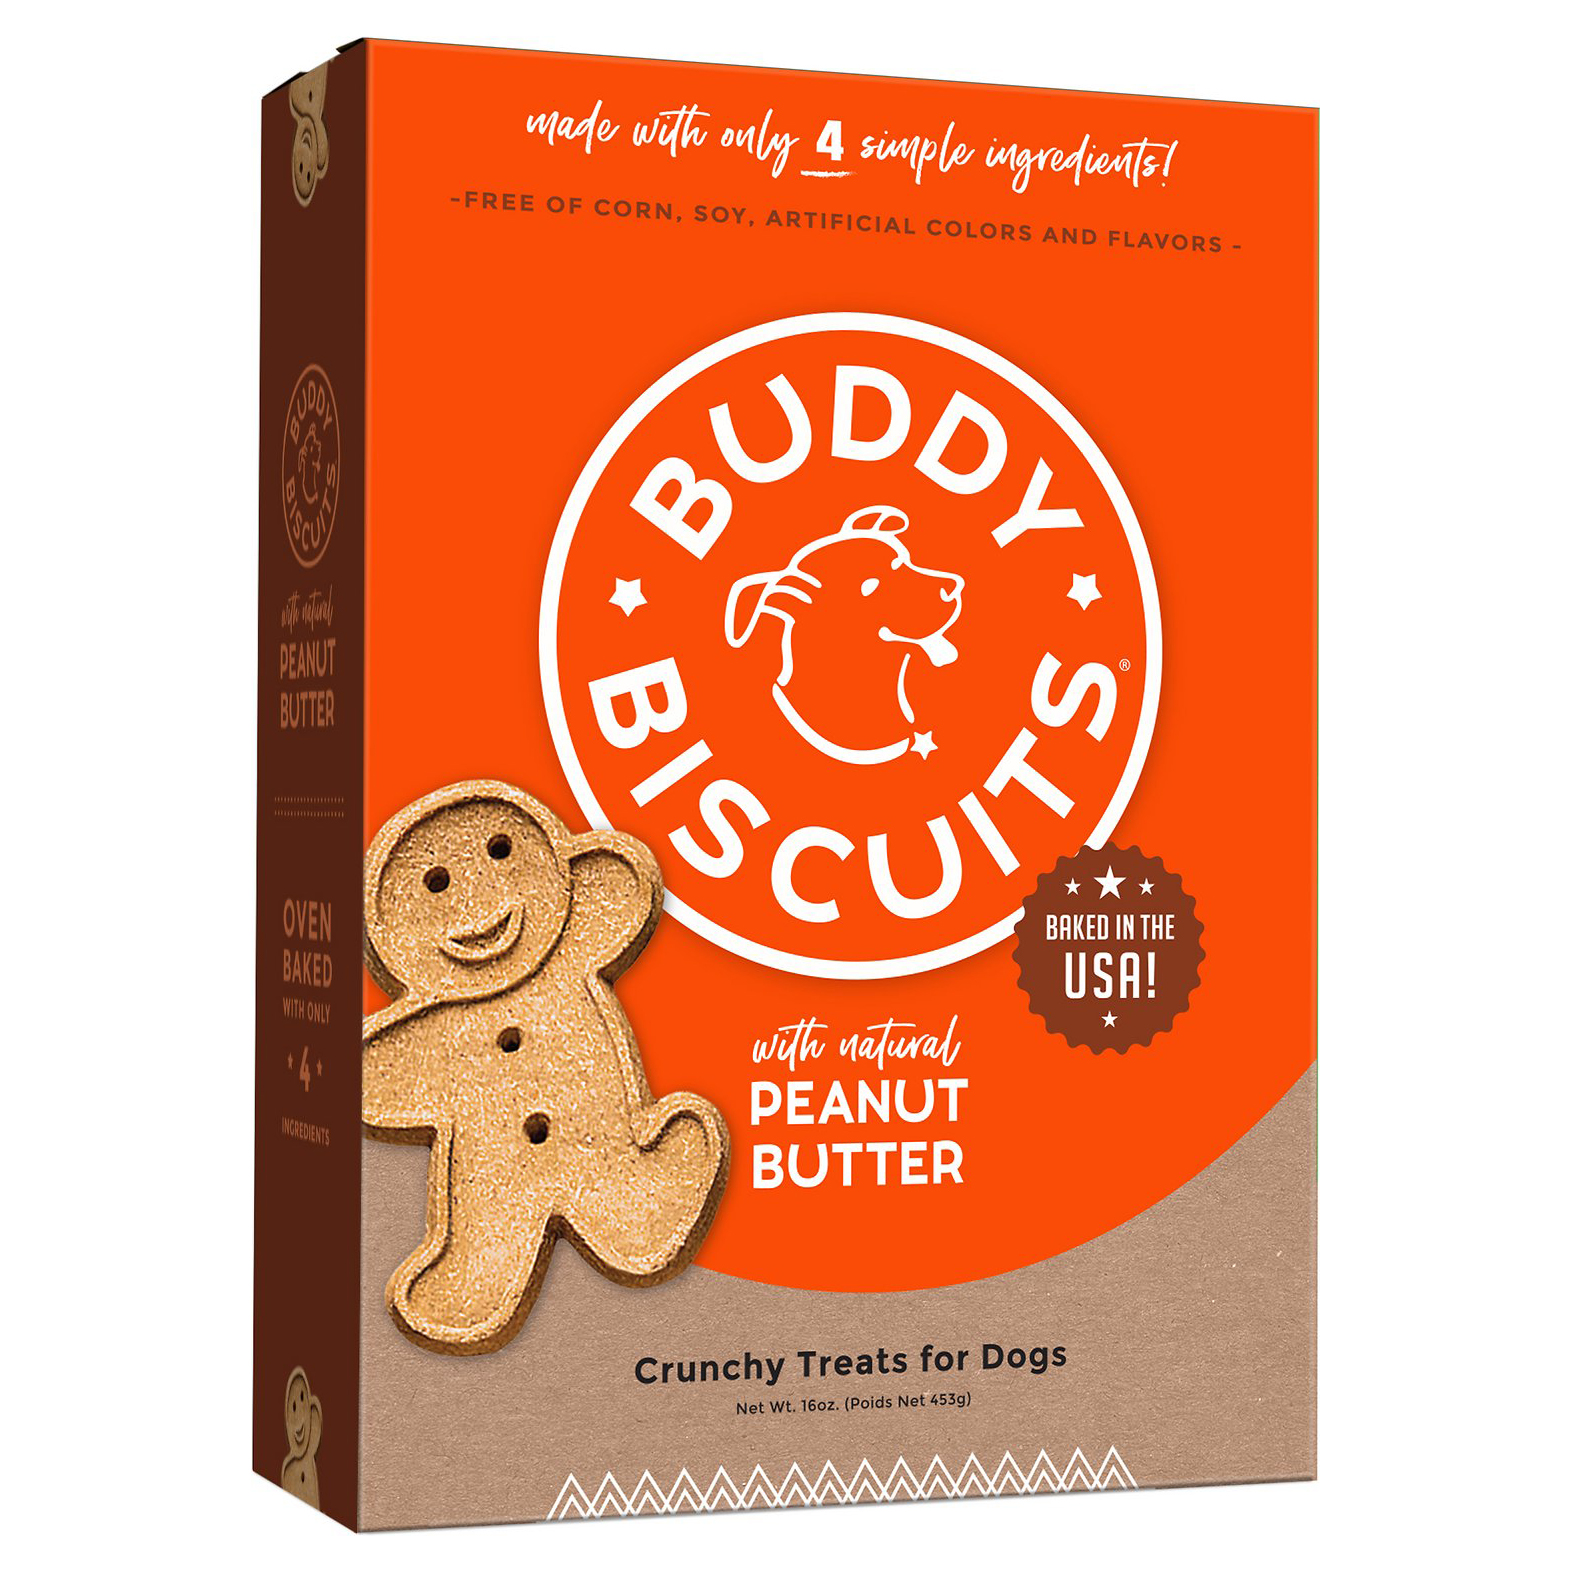 buddy-biscuits-original-oven-baked-peanut-butter-dog-treats